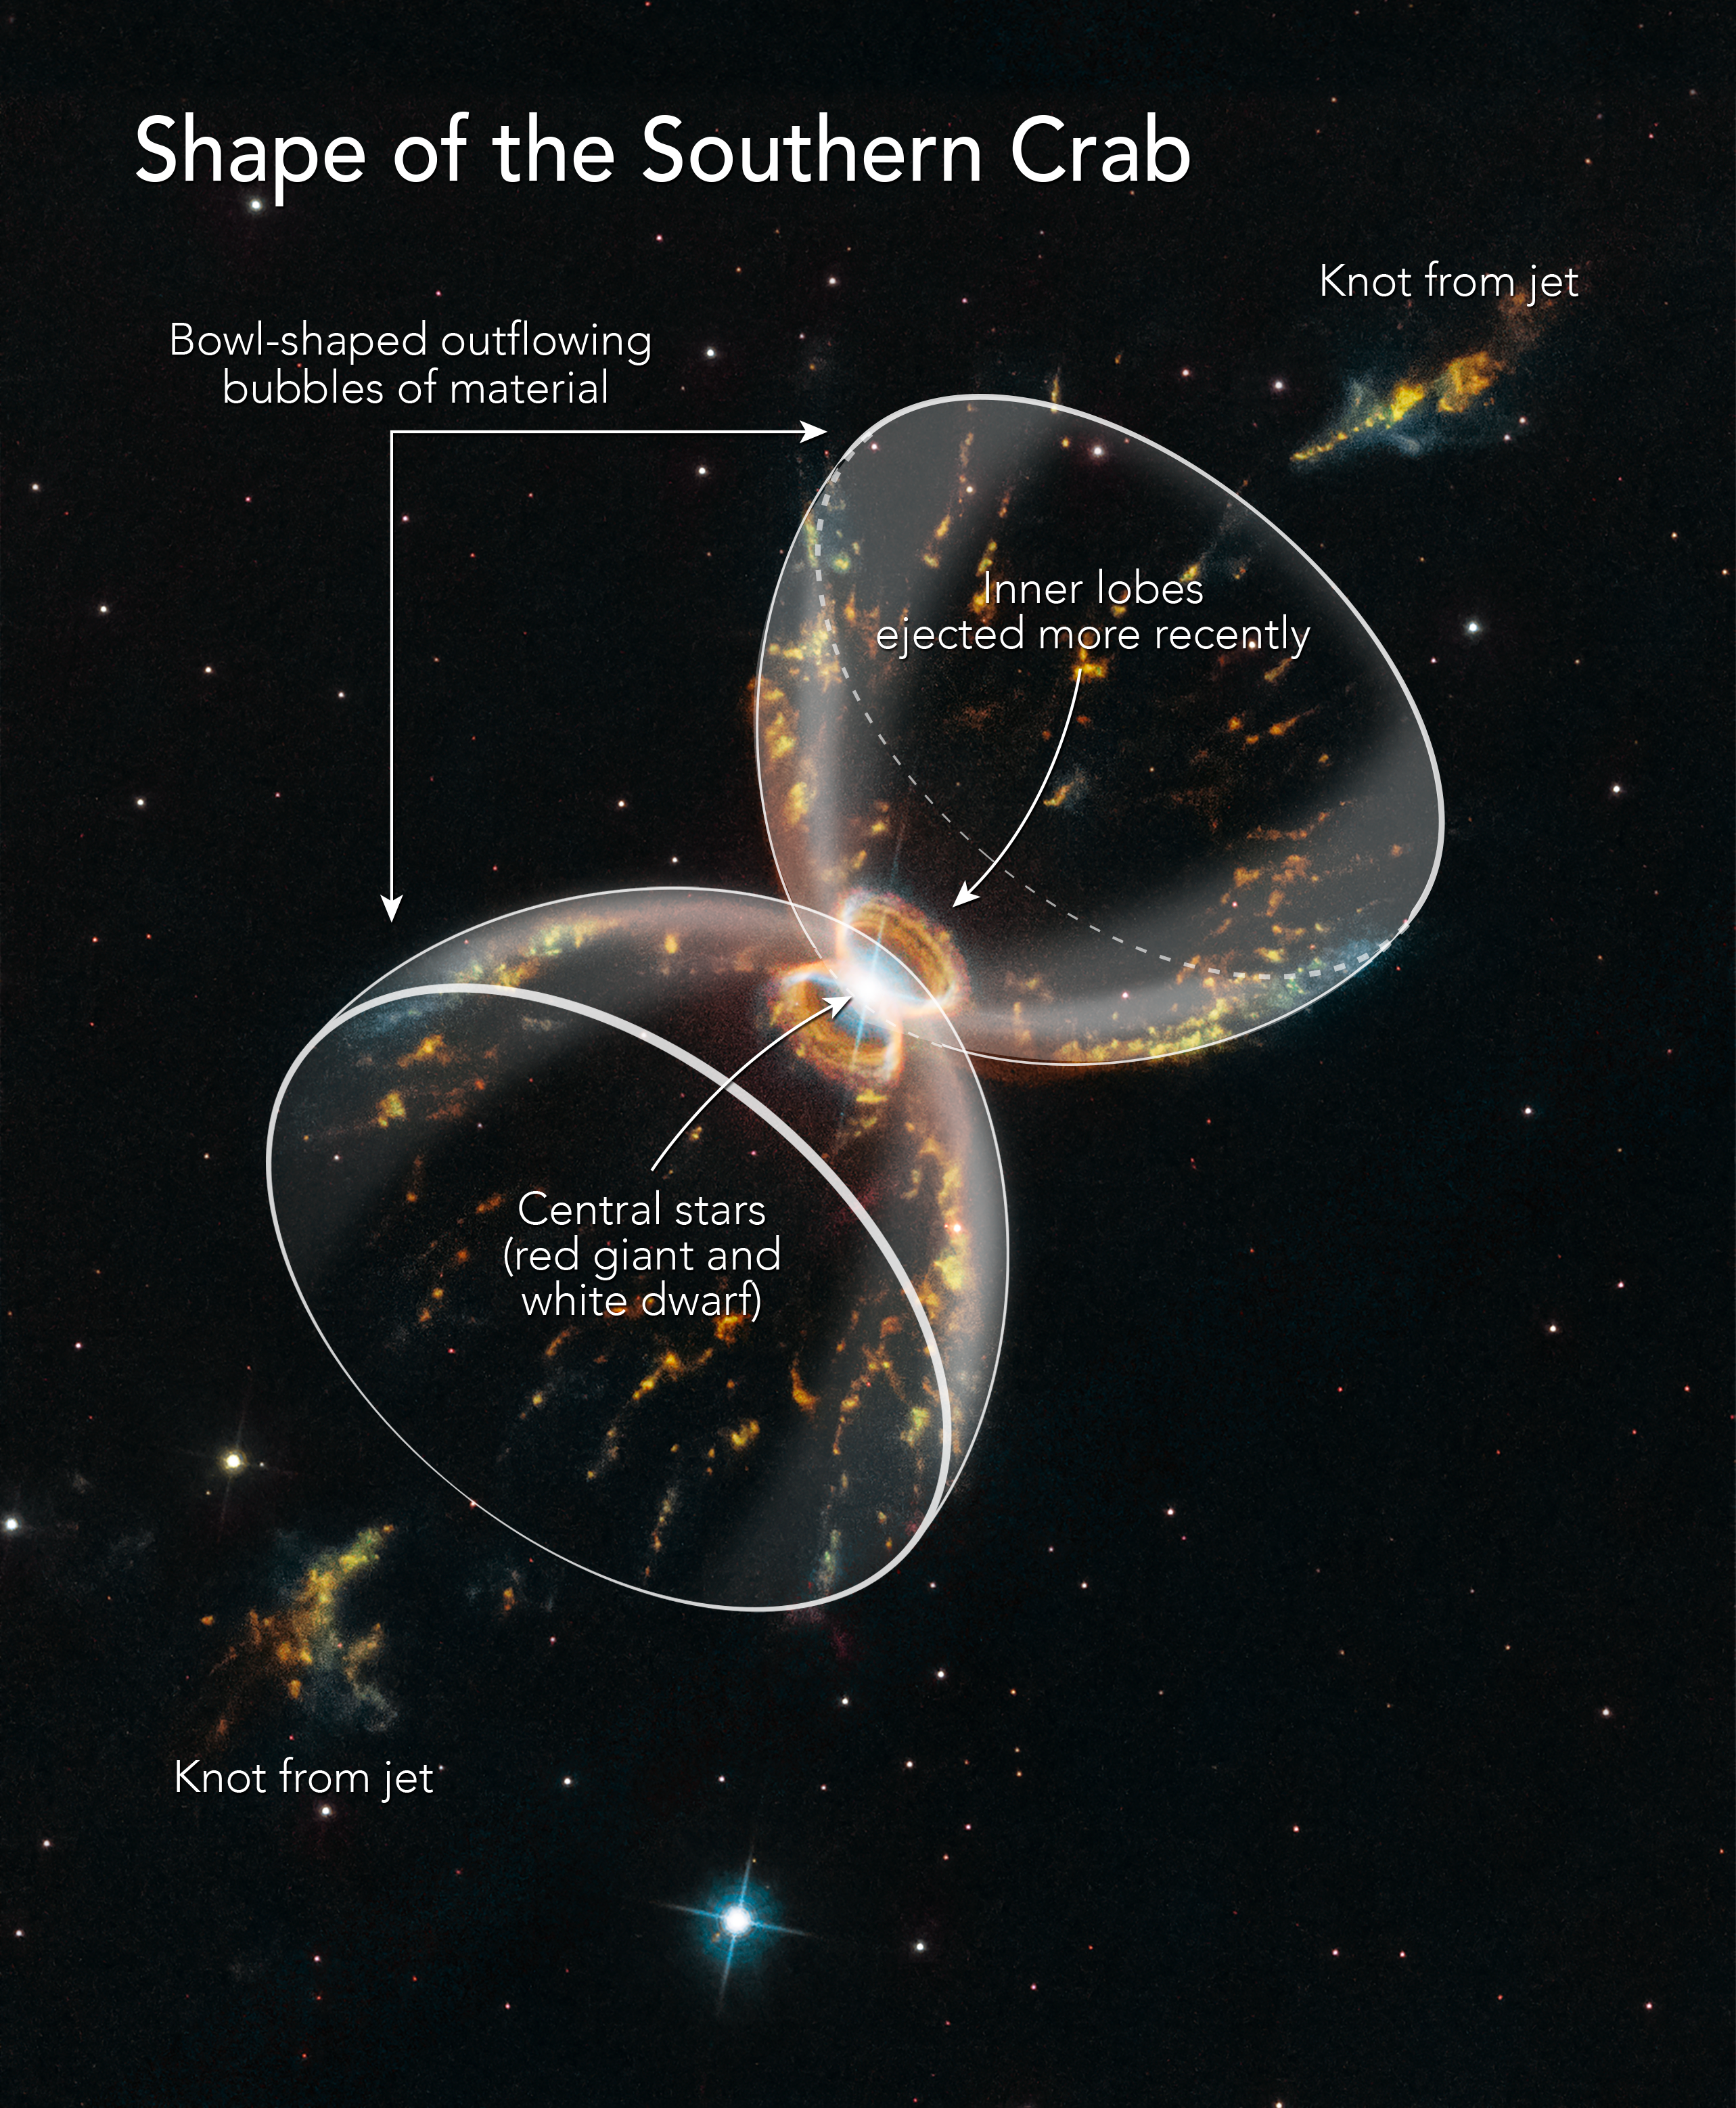 This stellar Crab Nebula image is the perfect way to celebrate Hubble's birthday